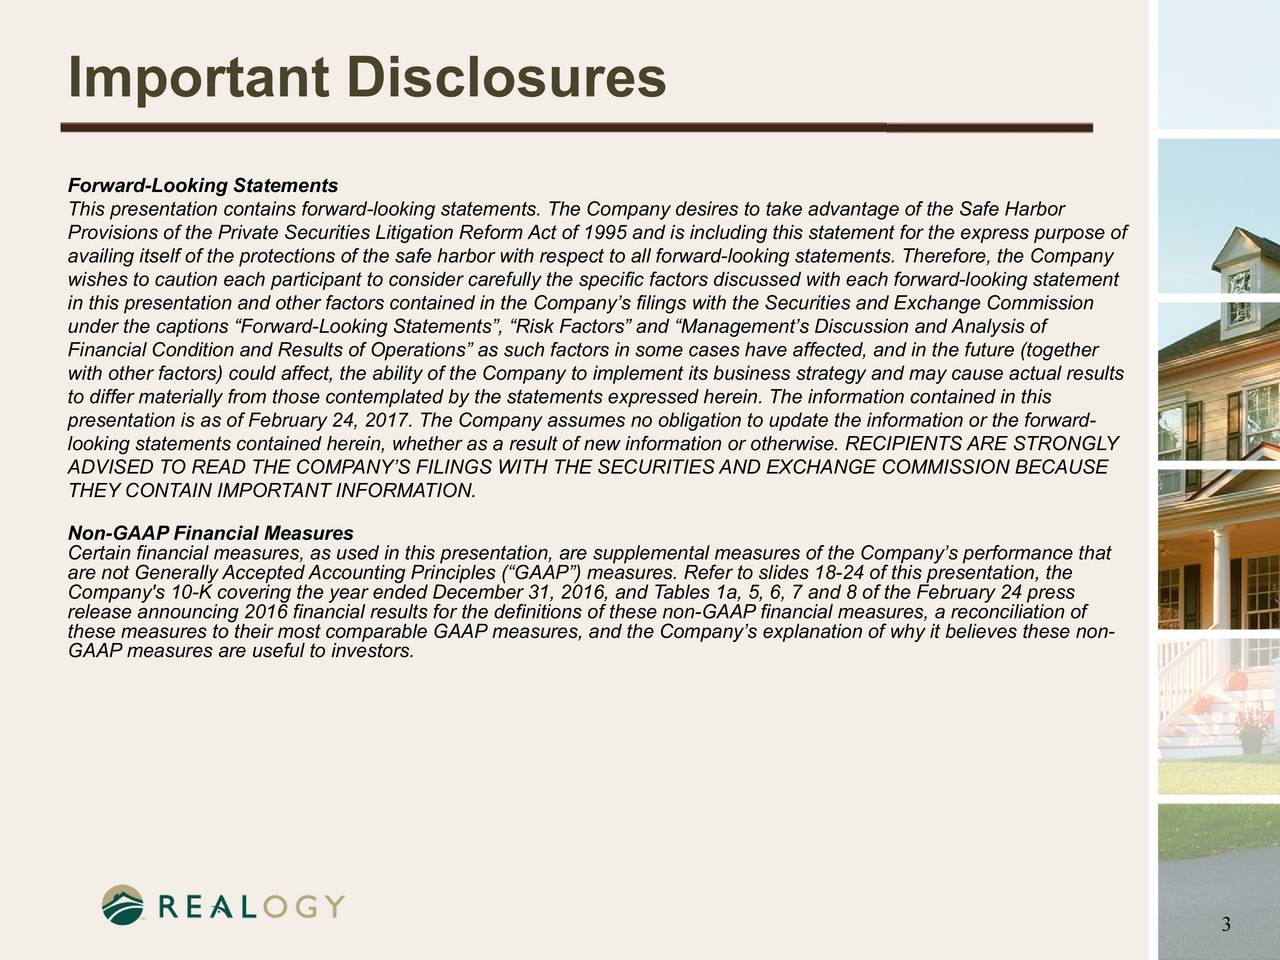 Forward-Looking Statements This presentation contains forward-looking statements. The Company desires to take advantage of the Safe Harbor Provisions of the Private Securities Litigation Reform Act of 1995 and is including this statement for the express purpose of availing itself of the protections of the safe harbor with respect to all forward-looking statements. Therefore, the Company wishes to caution each participant to consider carefully the specific factors discussed with each forward-looking statement in this presentation and other factors contained in the Companys filings with the Securities and Exchange Commission under the captions Forward-Looking Statements, Risk Factors and Managements Discussion and Analysis of Financial Condition and Results of Operations as such factors in some cases have affected, and in the future (together with other factors) could affect, the ability of the Company to implement its business strategy and may cause actual results to differ materially from those contemplated by the statements expressed herein. The information contained in this presentation is as of February24, 2017. The Company assumes no obligation to update the information or the forward- looking statements contained herein, whether as a result of new information or otherwise. RECIPIENTS ARE STRONGLY ADVISED TO READ THE COMPANYS FILINGS WITH THE SECURITIES AND EXCHANGE COMMISSION BECAUSE THEY CONTAIN IMPORTANT INFORMATION. Non-GAAP Financial Measures Certain financial measures, as used in this presentation, are supplemental measures of the Companys performance that are not Generally Accepted Accounting Principles (GAAP) measures. Refer to slides 18-24 of this presentation, the Company's 10-K covering the year ended December 31, 2016, and Tables 1a, 5, 6, 7 and 8 of the February24 press release announcing 2016 financial results for the definitions of these non-GAAP financial measures, a reconciliation of these measures to their most comparable GAAP measures, and the